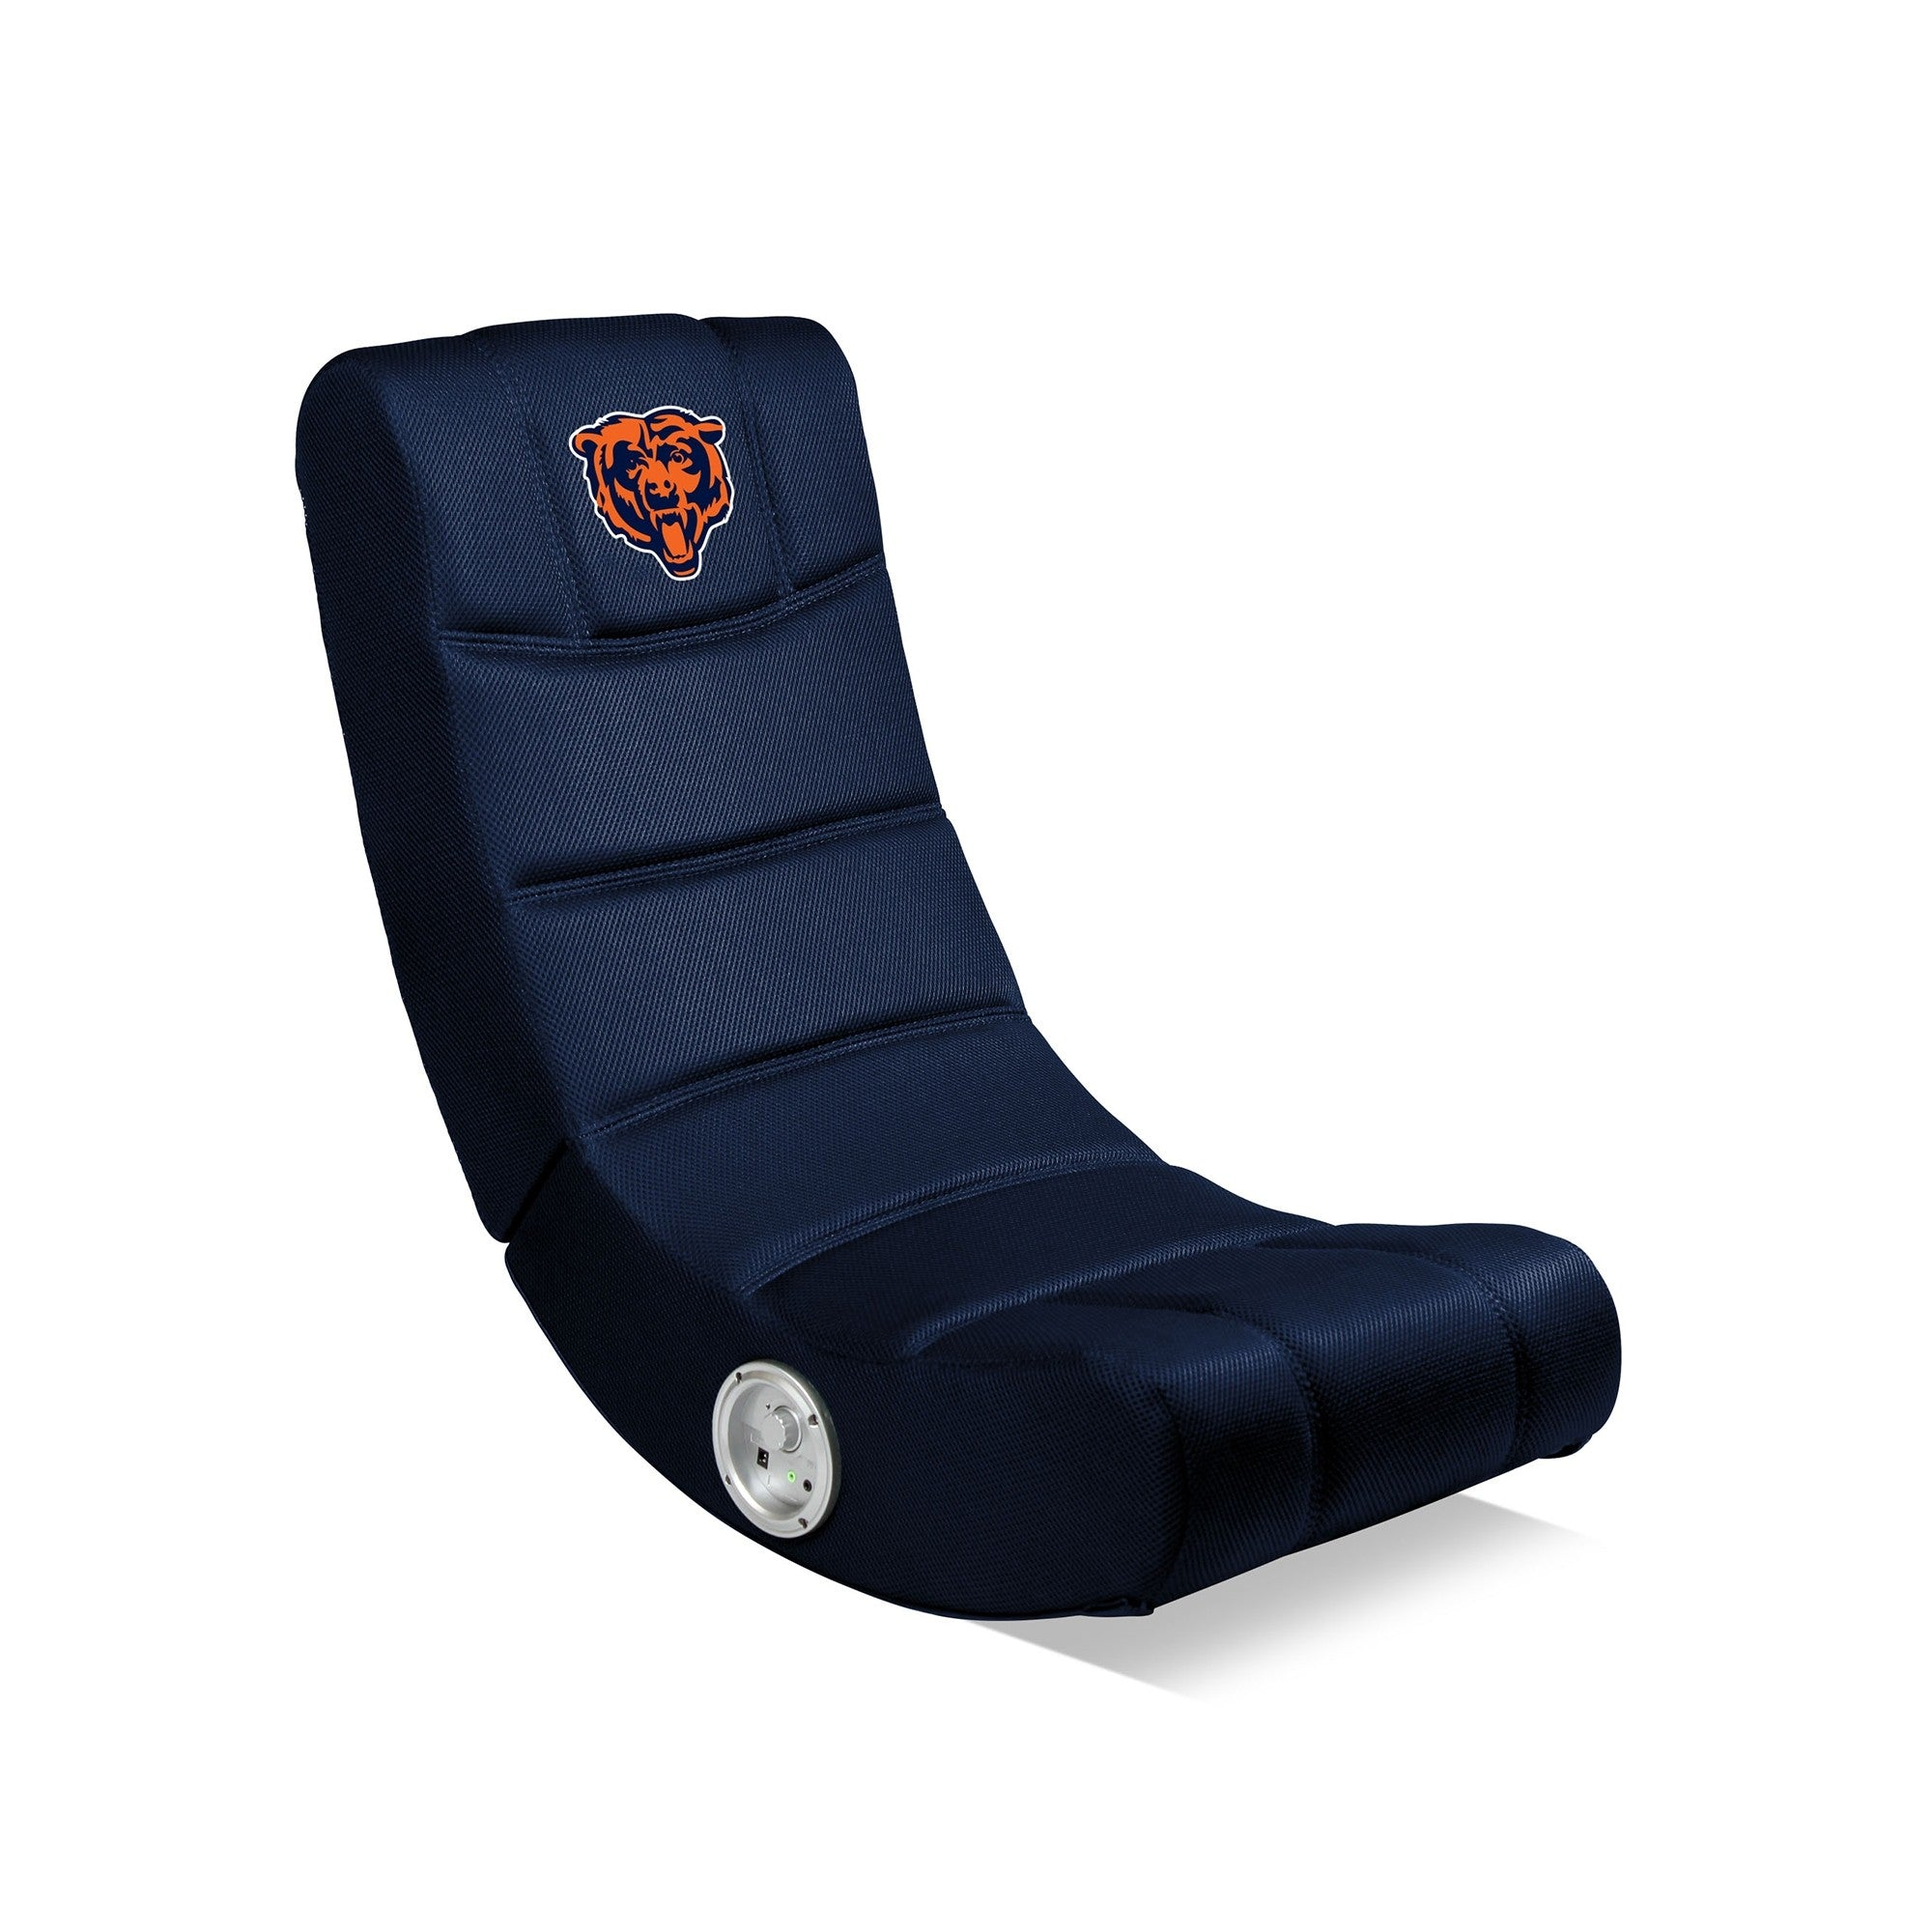 Chicago Bears Bluetooth Rocker Gaming Chair   Racer Gaming Chairs